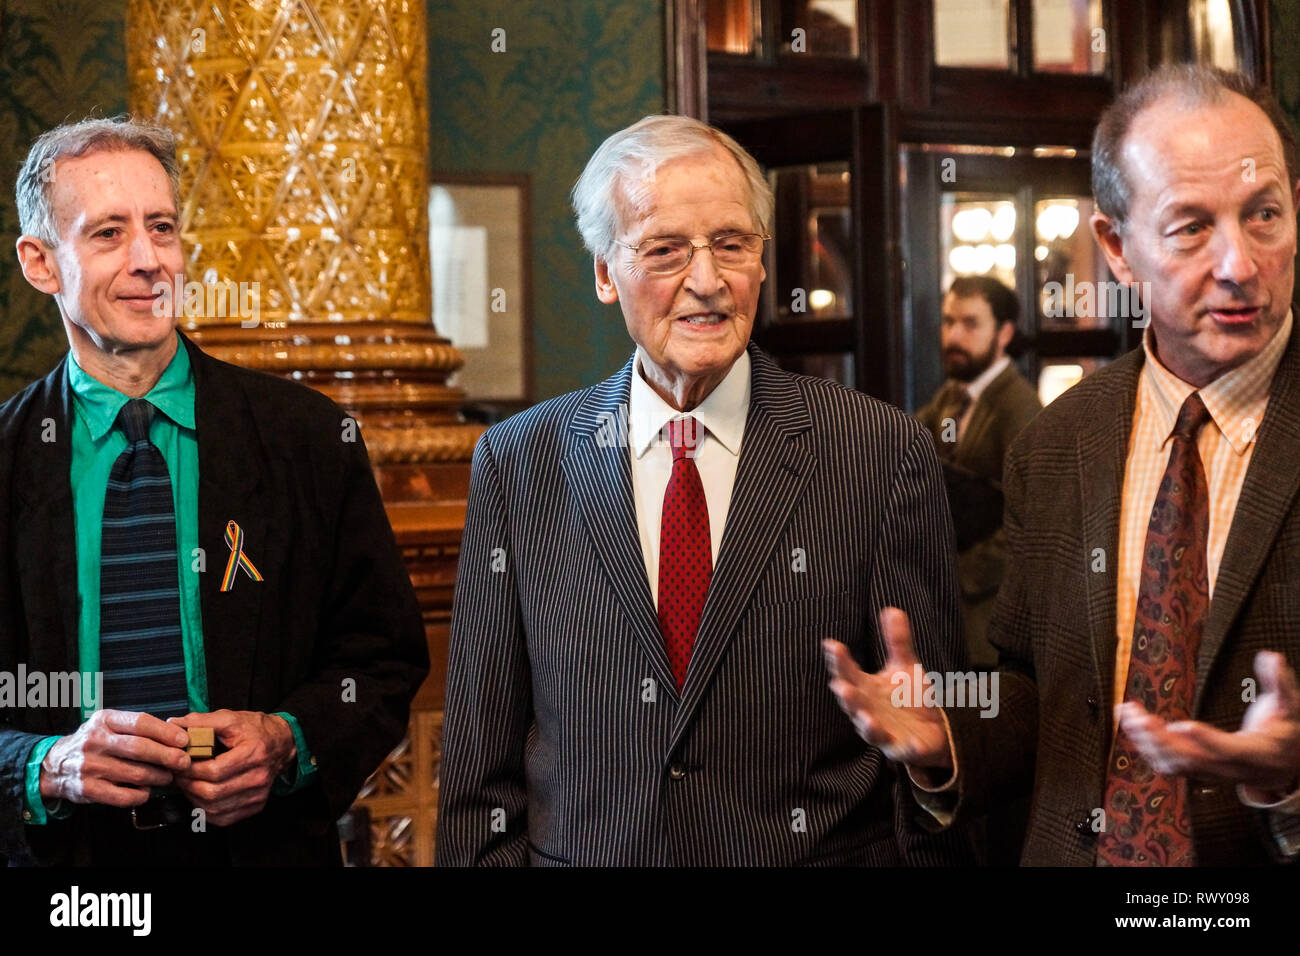 London, UK. 07th Mar, 2019. Peter Tatchell, Nicholas Parsons, Rupert MorrisNicholas Parsons, actor and host of long-running Just a Minute, Peter Tatchell, human rights activist, and Valerie Brandes, founder and publisher of Jacaranda Books accept Honorary Membership of the National Liberal Club at a luncheon hosted by NLC Chairman, Rupert Morriss. Credit: Peter Hogan/Alamy Live News - Stock Image